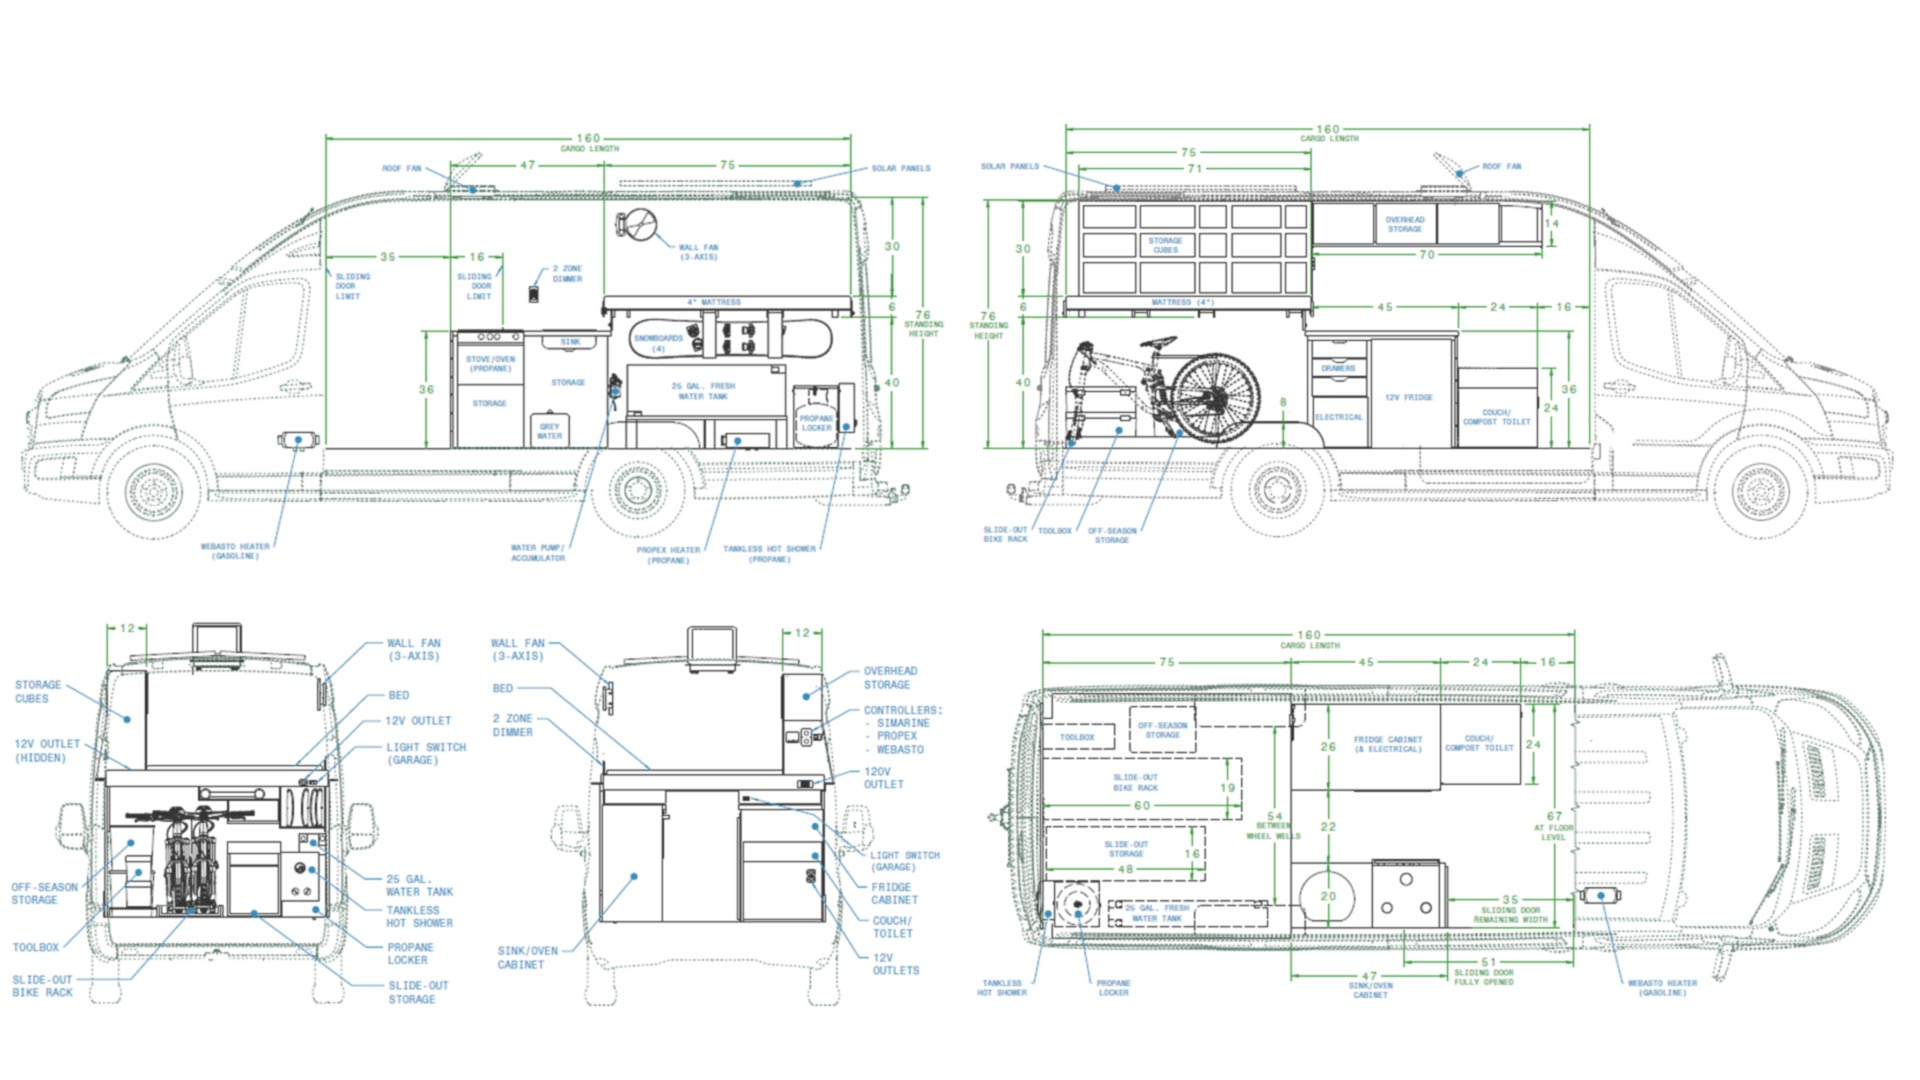 Camper Van Floor Plan & Interior Layout